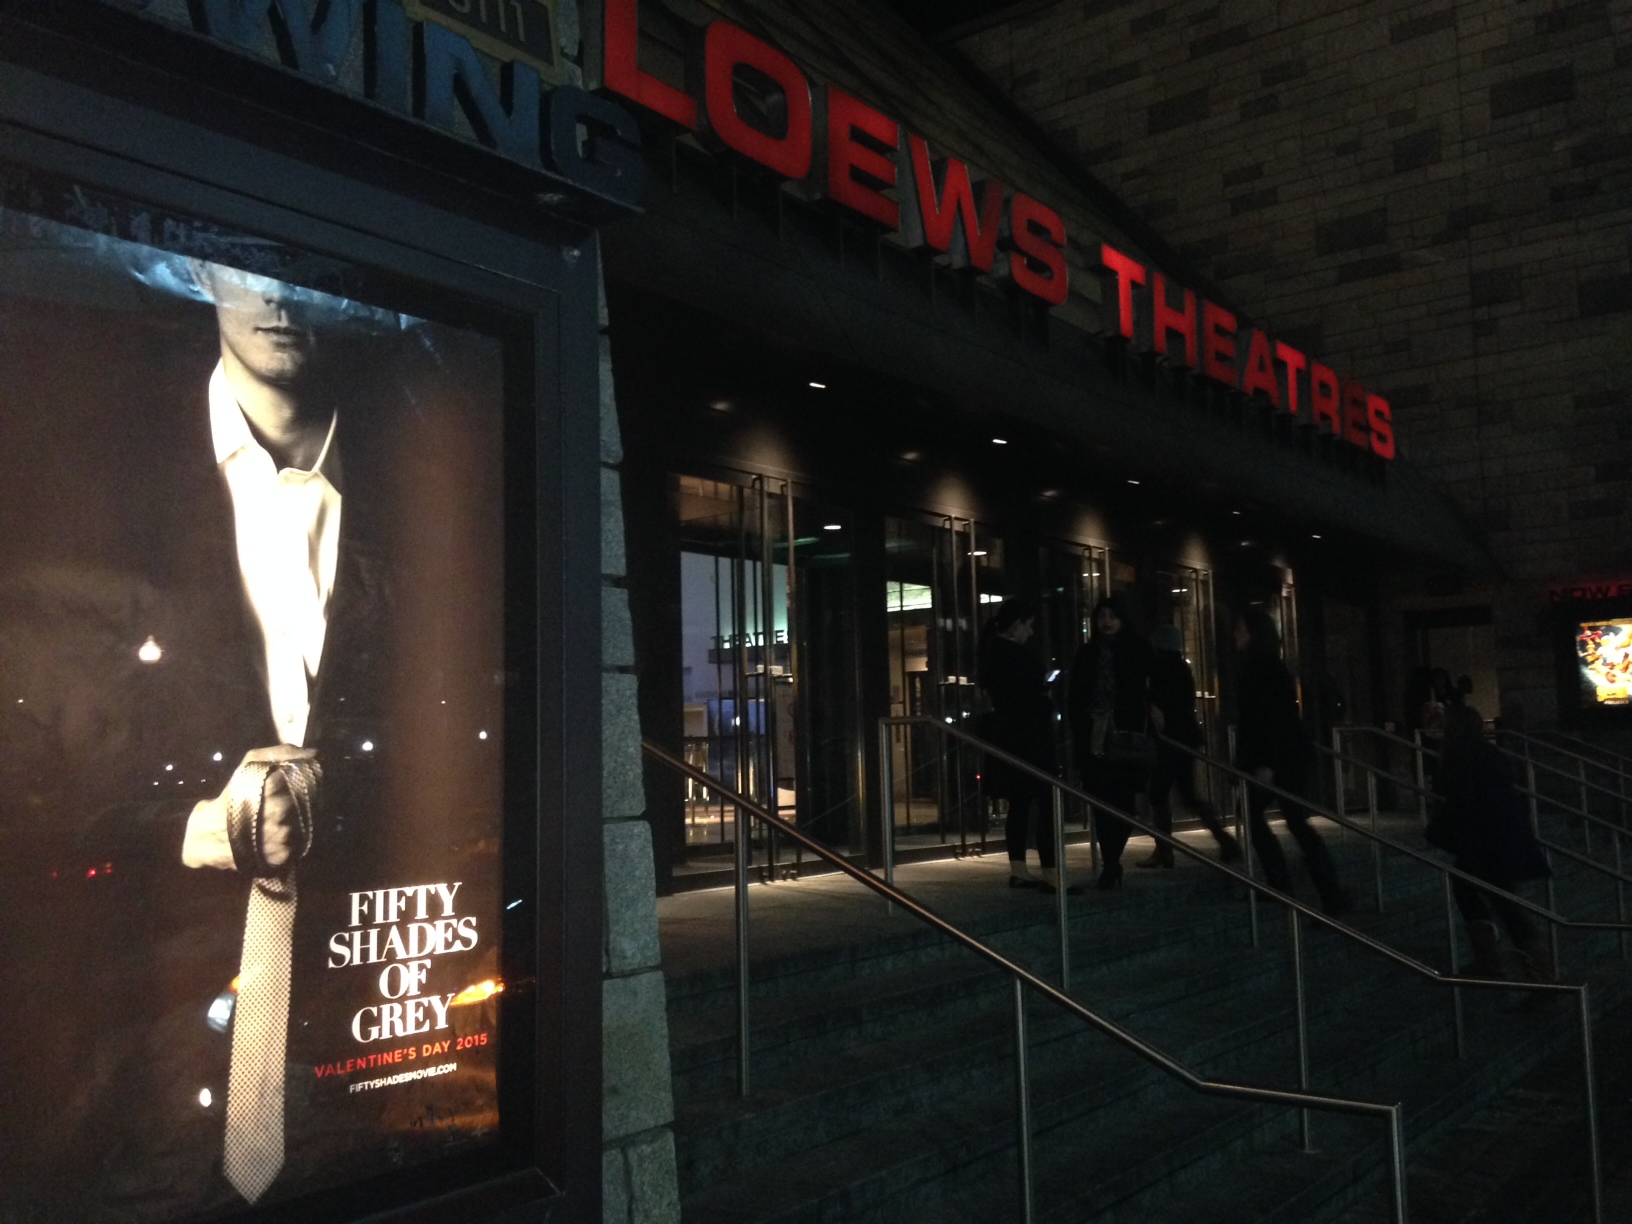 Fans mixed after '50 Shades of Grey' premiere